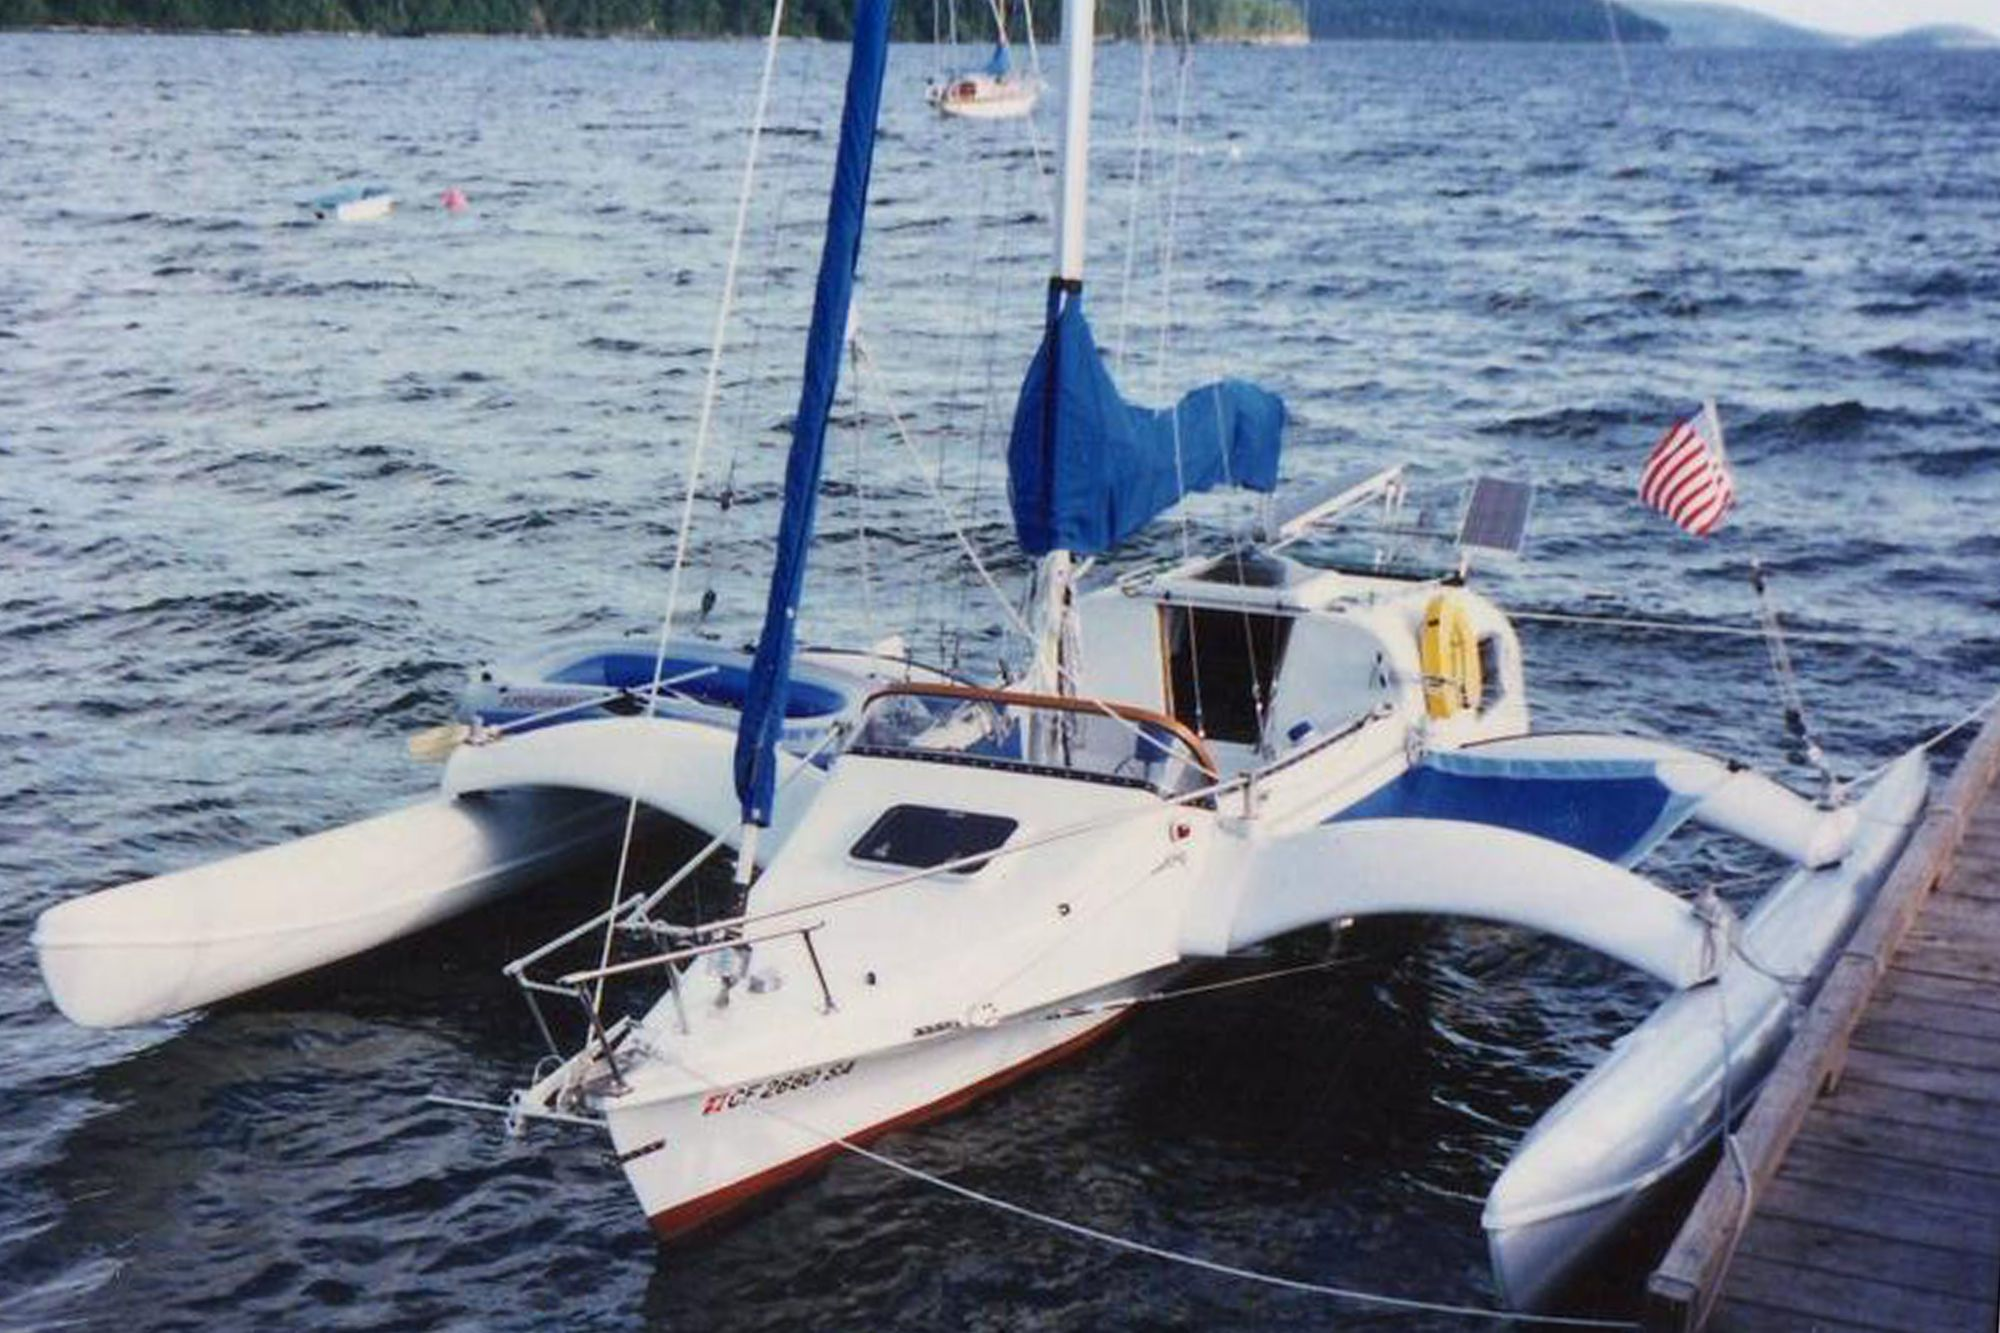 rc sailboats for sale with 9992430403630531 on Carnival Spirit Model Cruise Ship as well 05 Palm Beach 21 Bay Boat Center Console furthermore Pdf Classic Wooden Yachts For Sale Randkey in addition 9992430403630531 together with 2006 Sea Doo Speedster Wake Jet Boat.